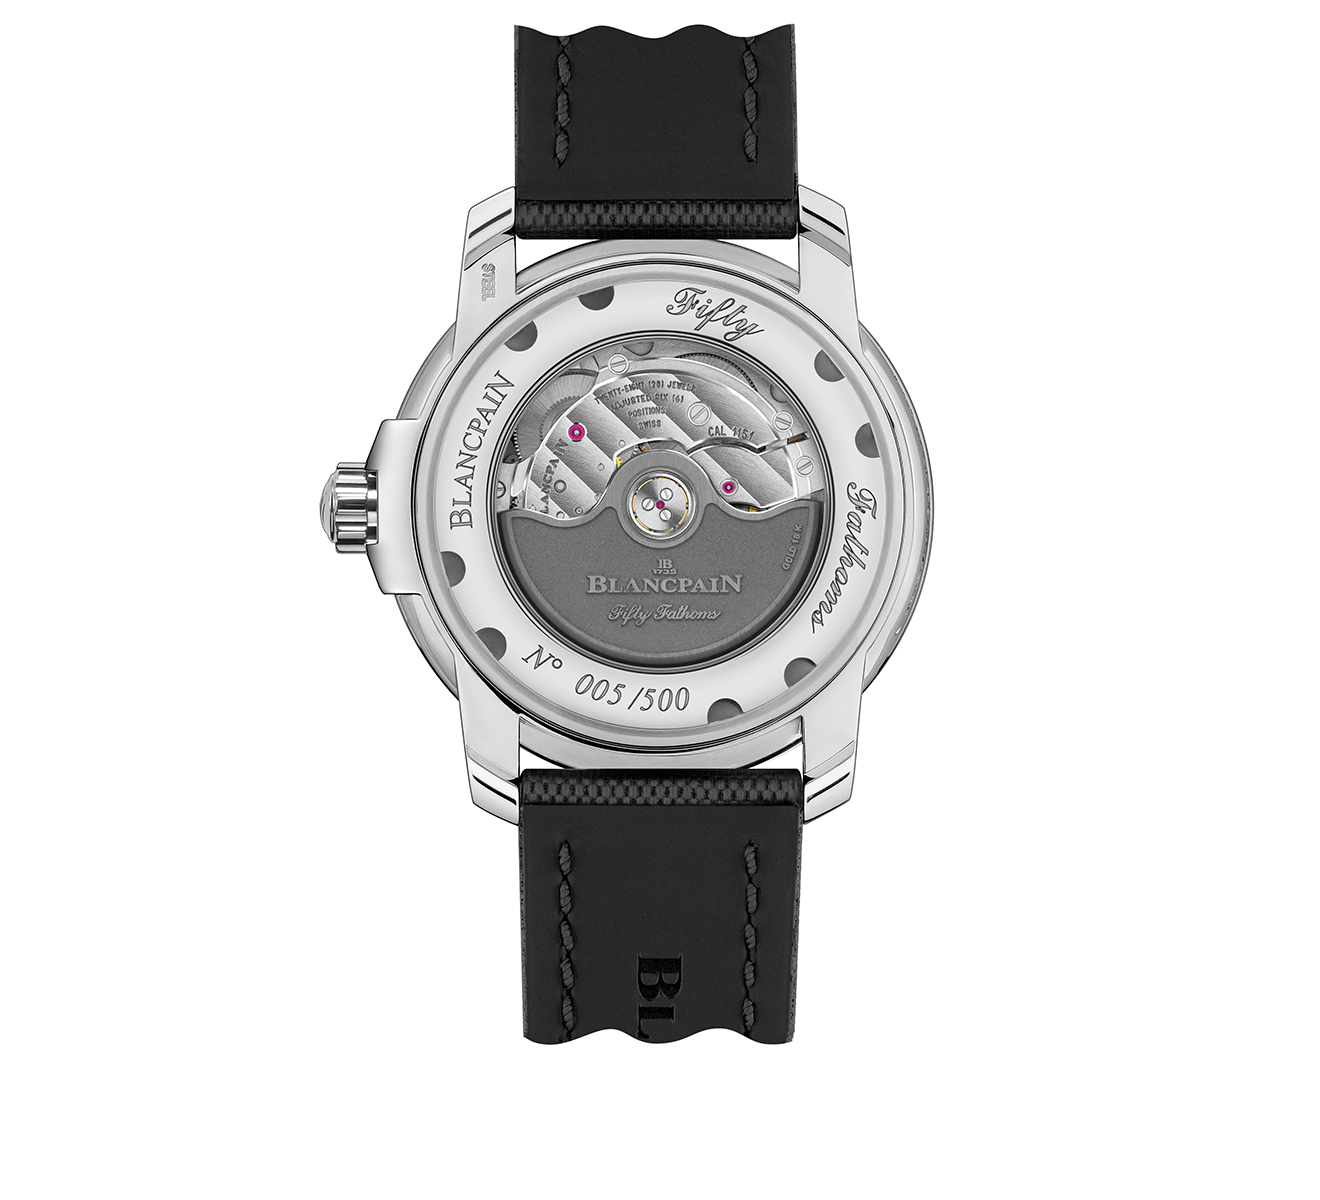 Часы Automatique Blancpain Fifty Fathoms 5008 1130 B52A - фото 2 – Mercury